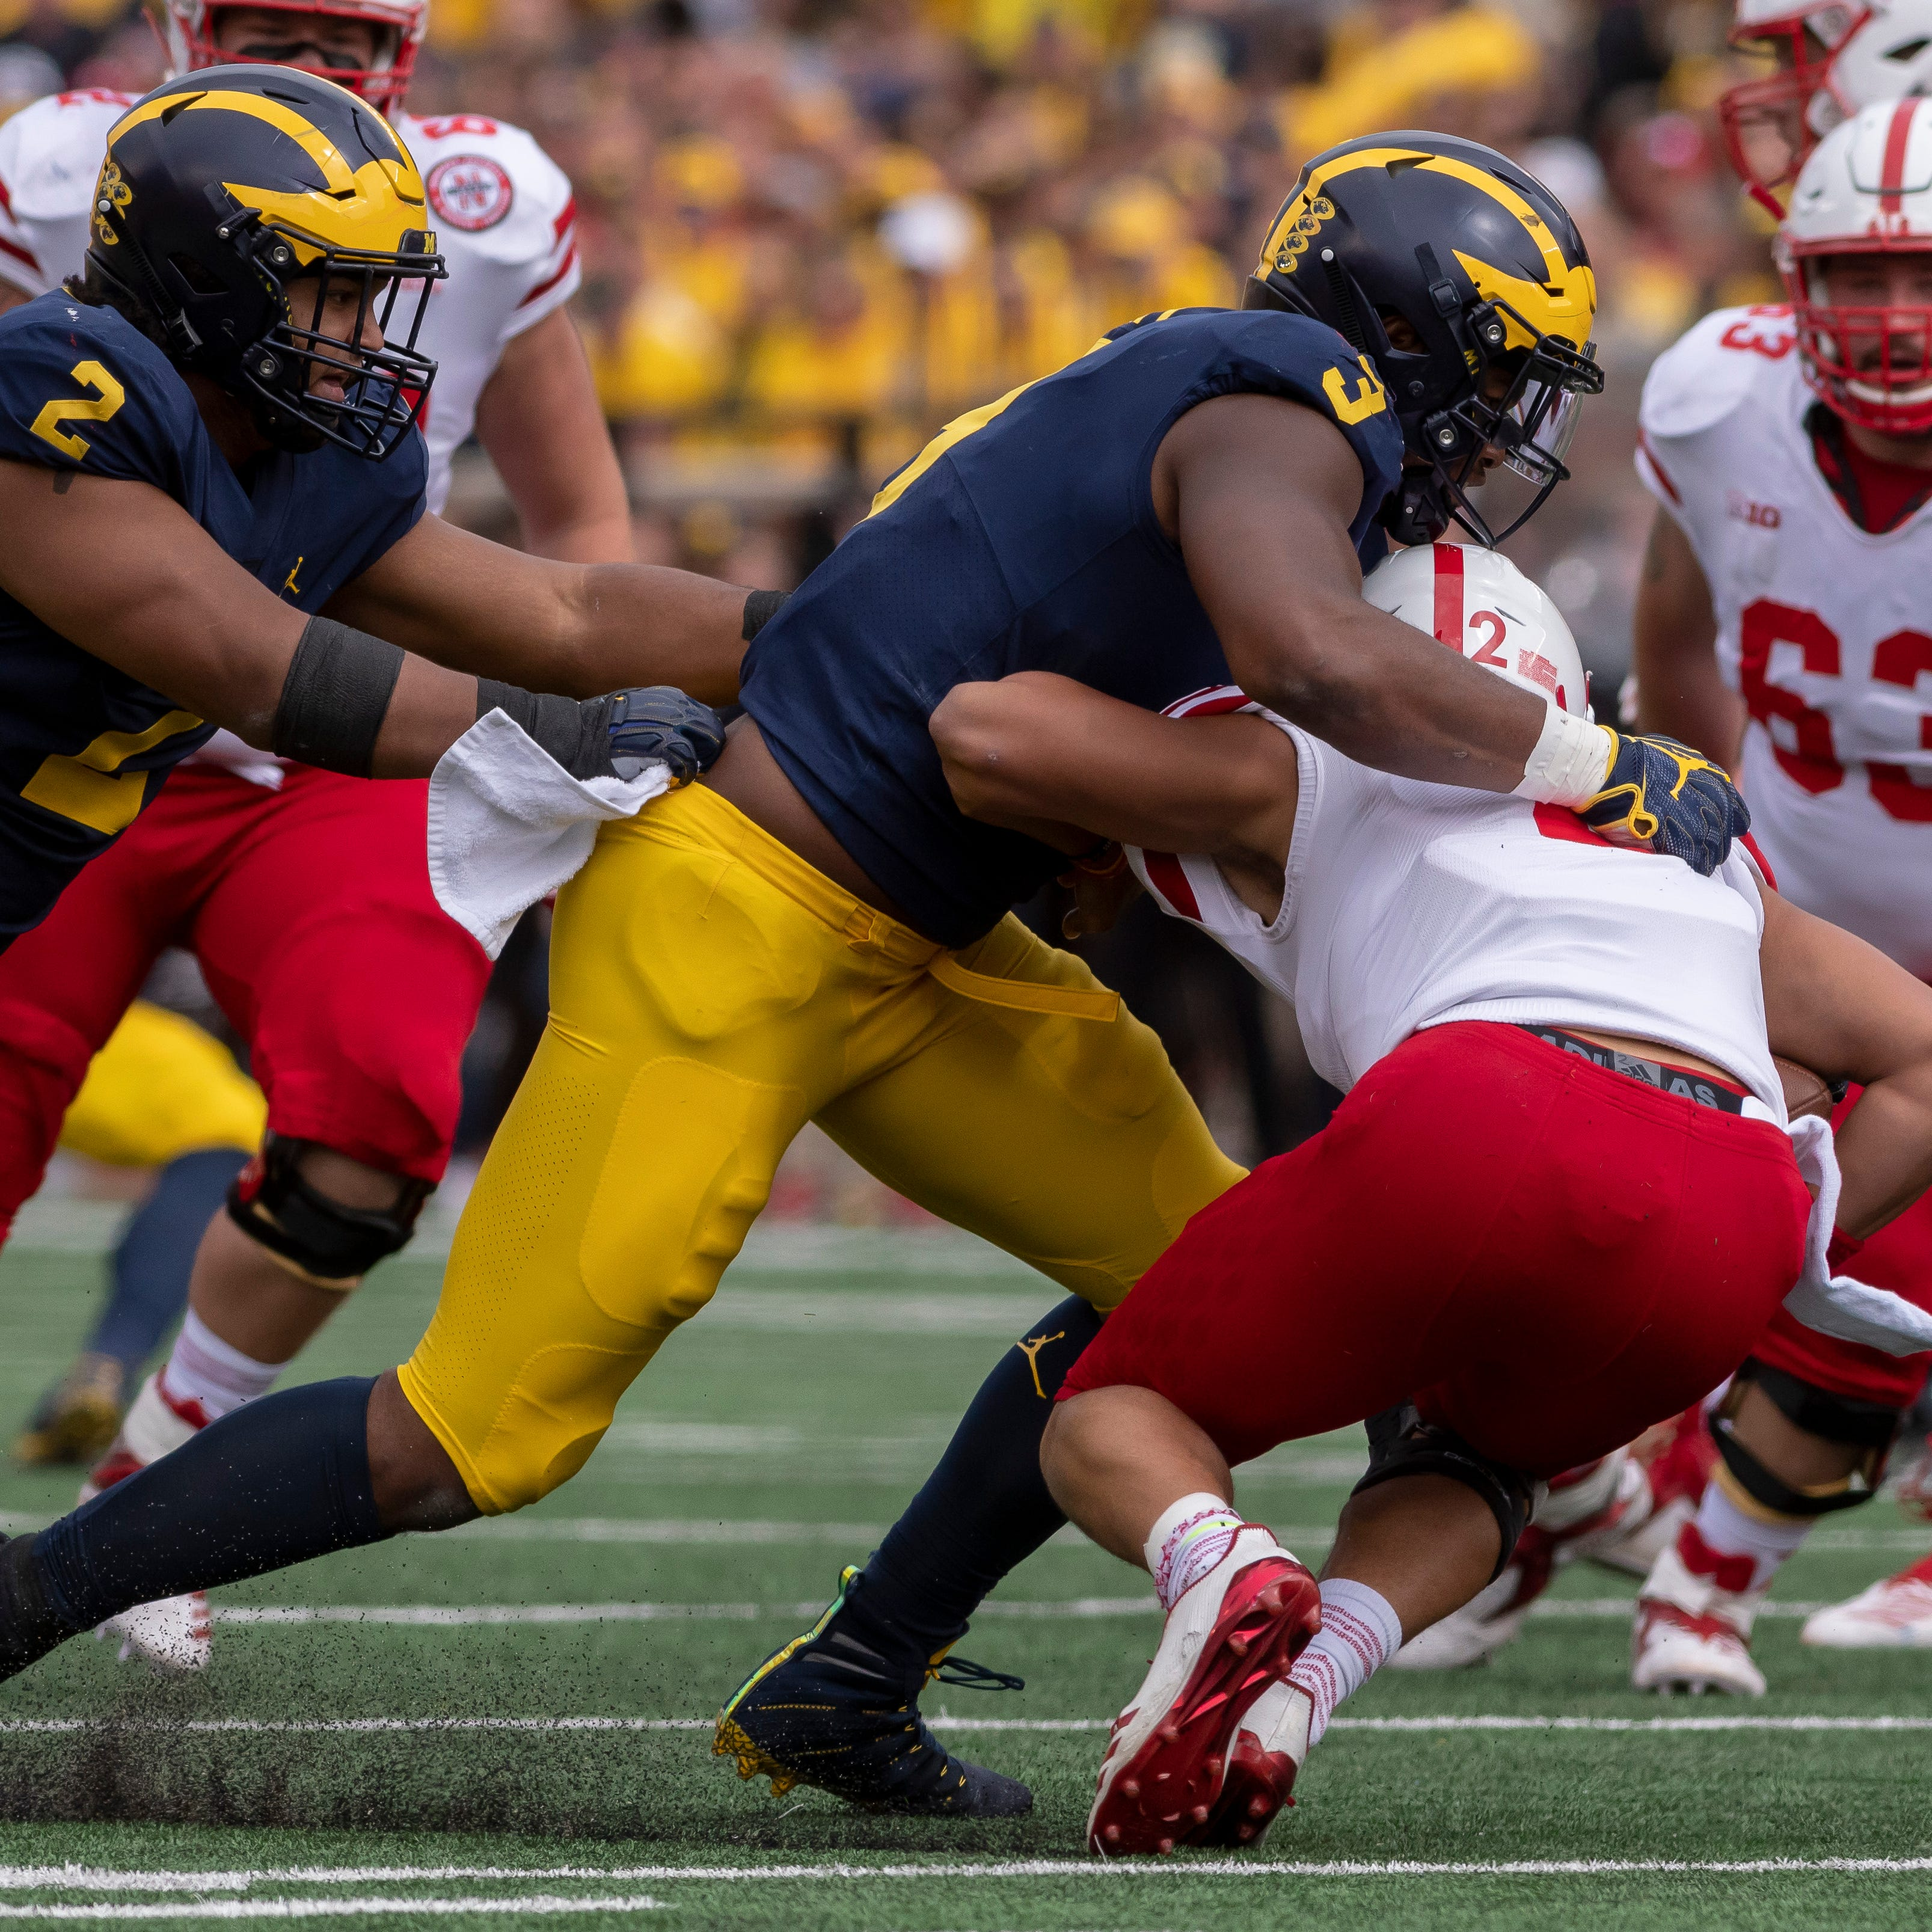 Injured Rashan Gary's status remains unclear for Michigan